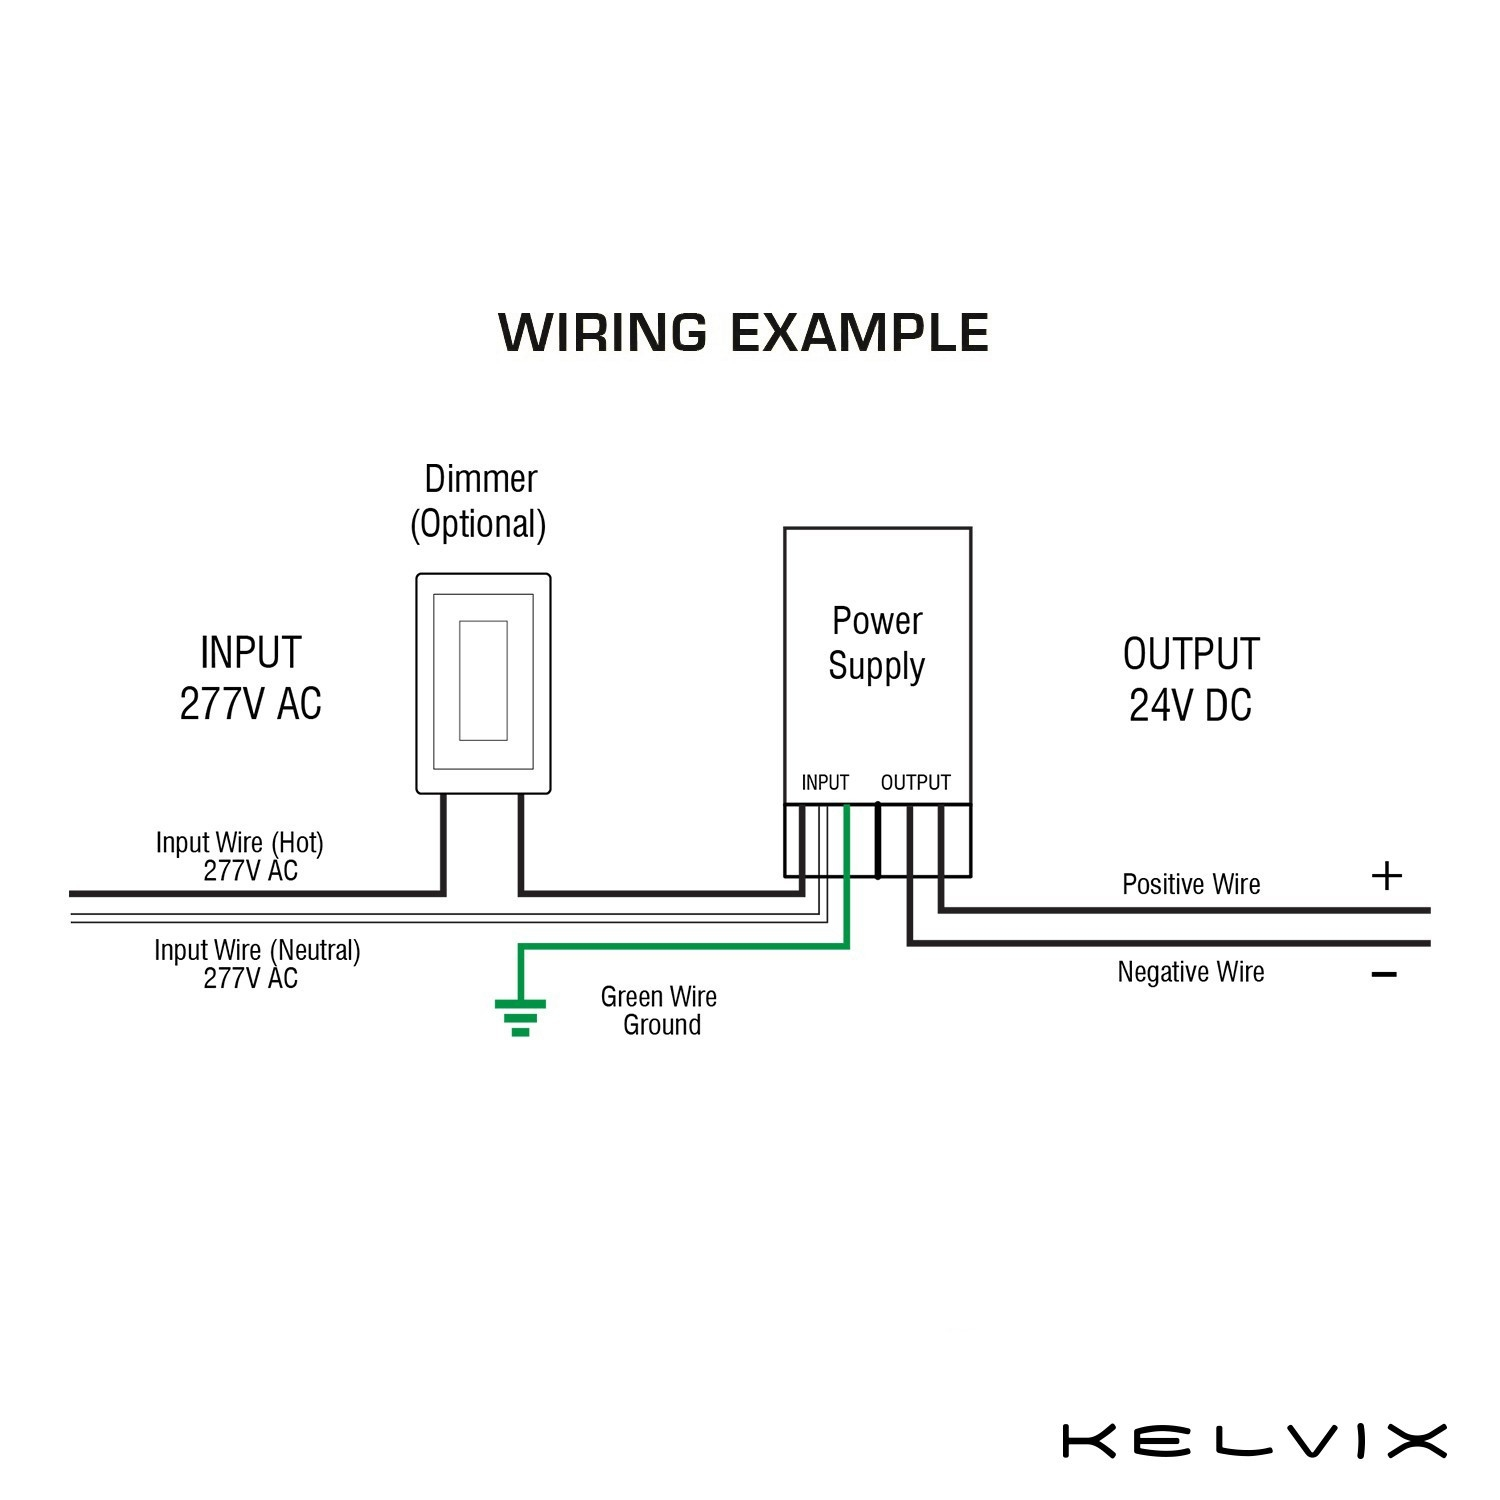 277 Volt Lighting Wiring Diagram | Free Wiring Diagram